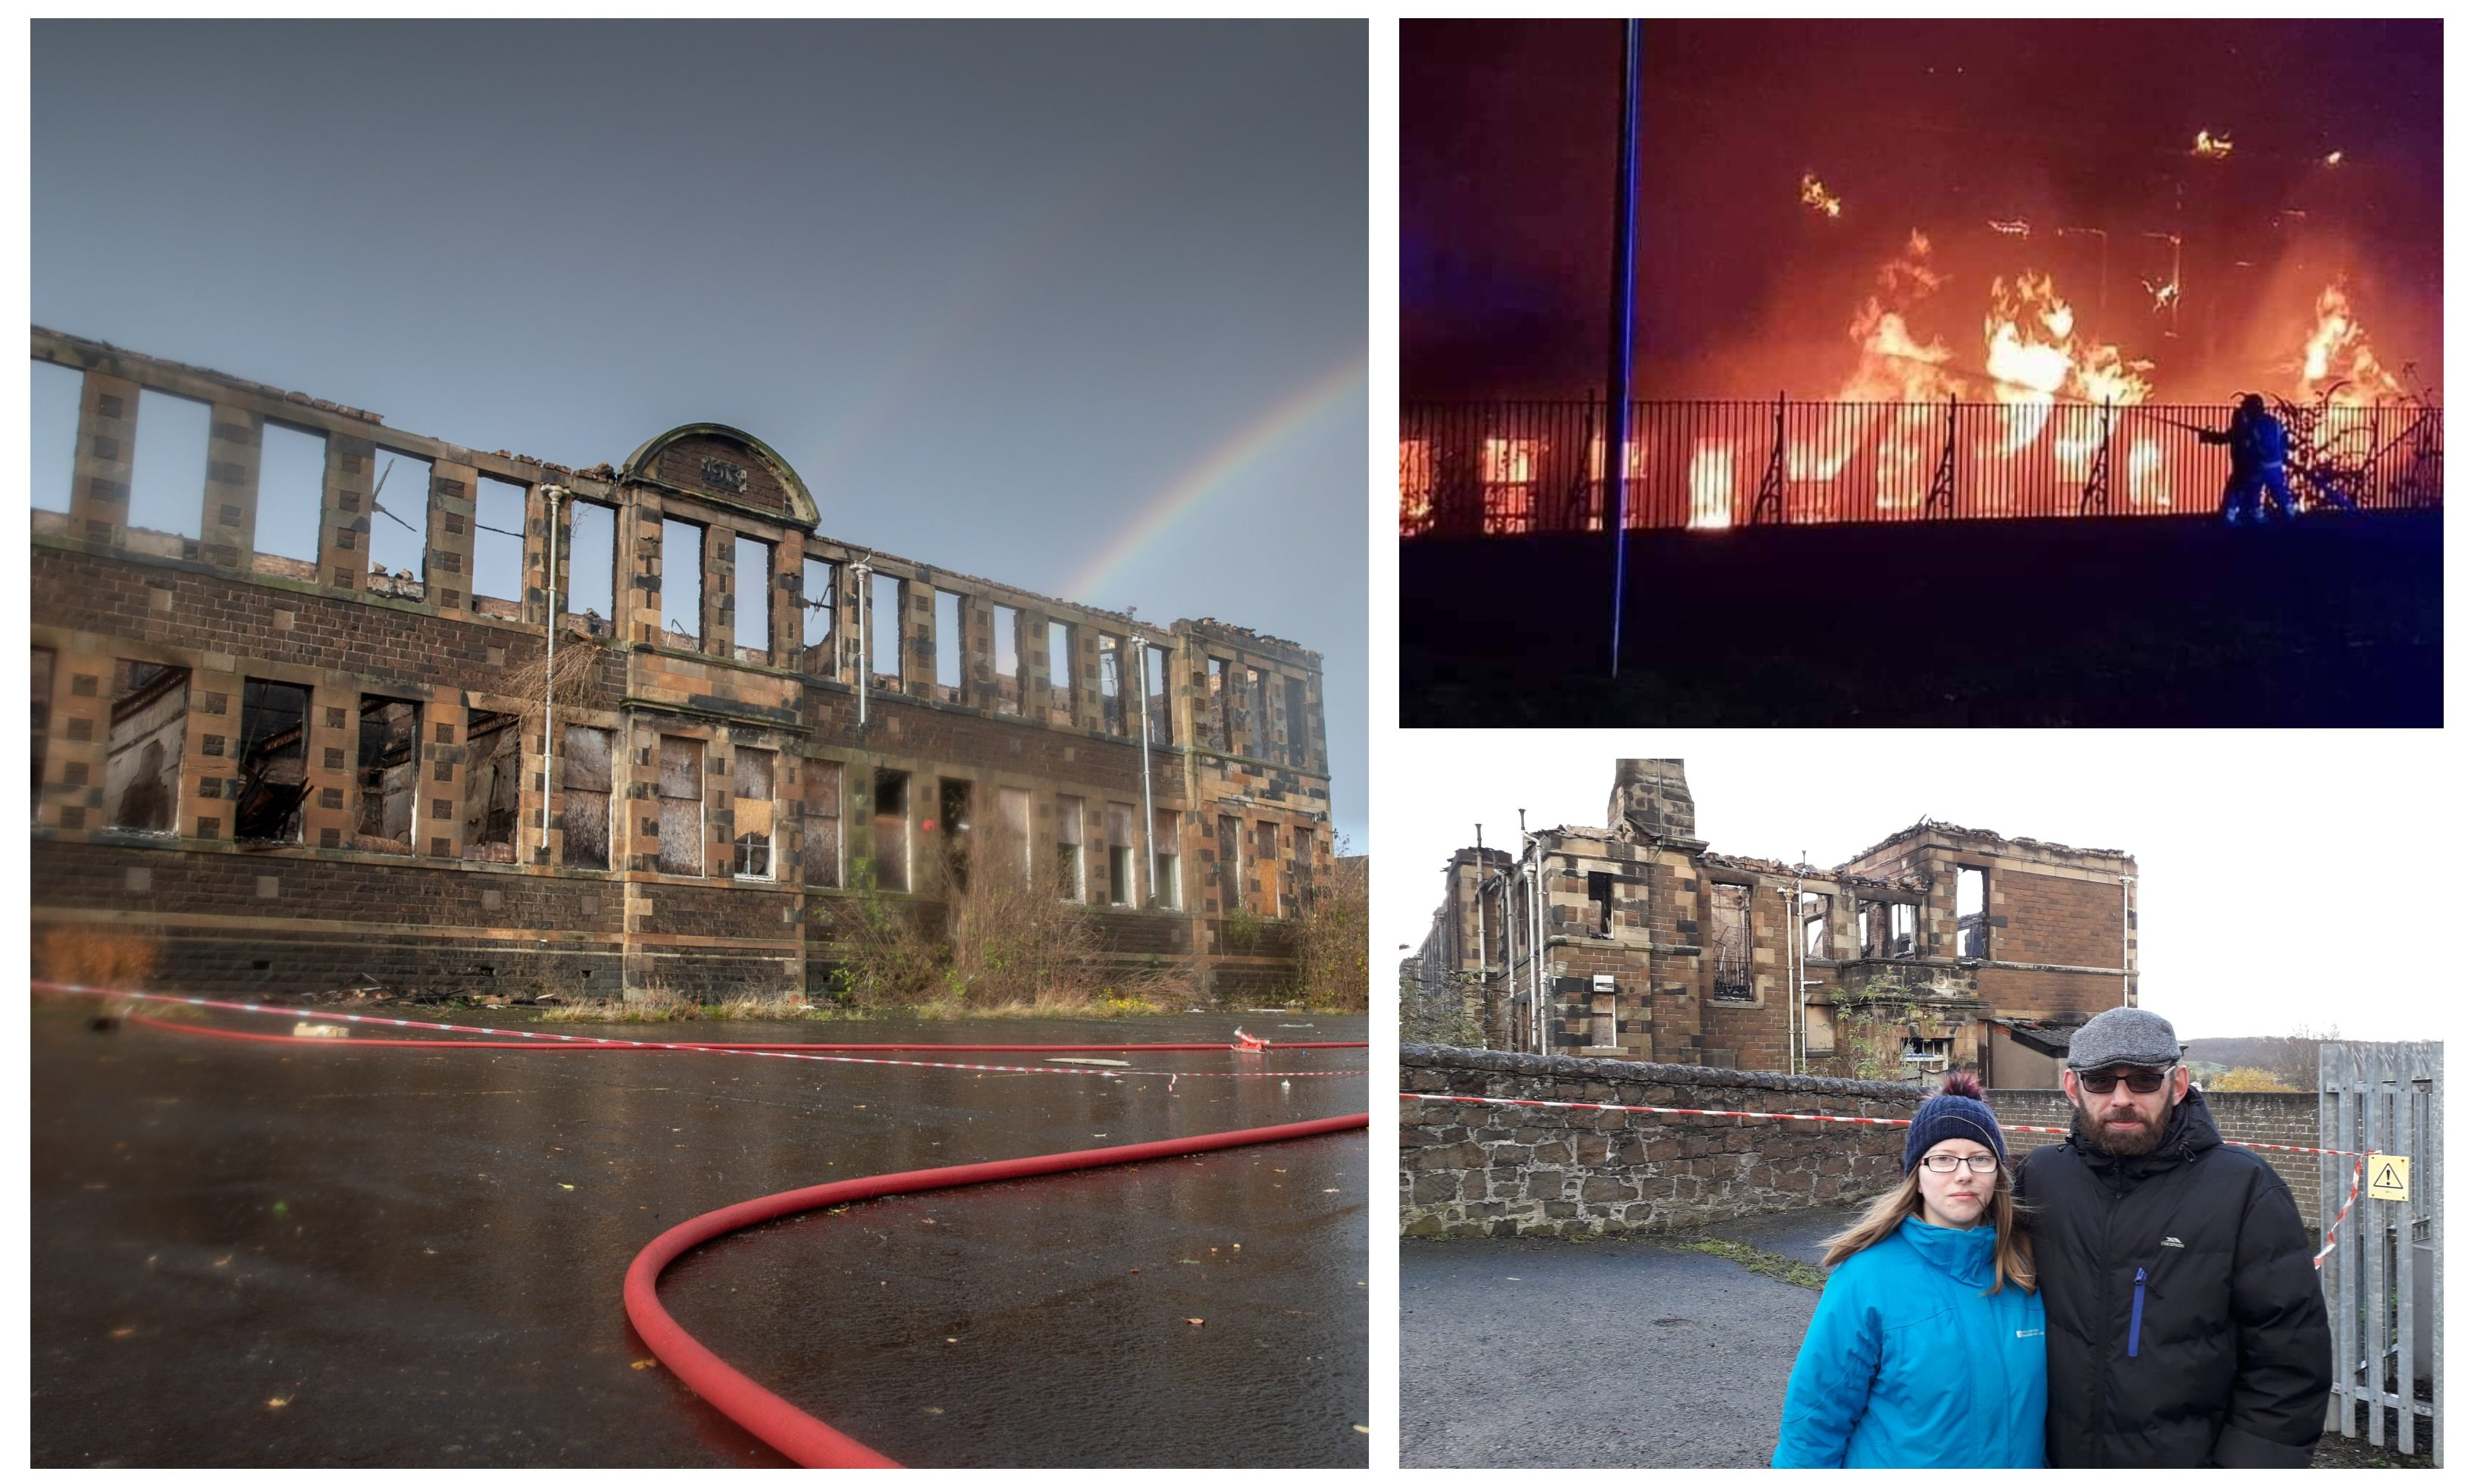 Nathalie and Jim were forced to flee the area during the Inverkeithing school blaze.